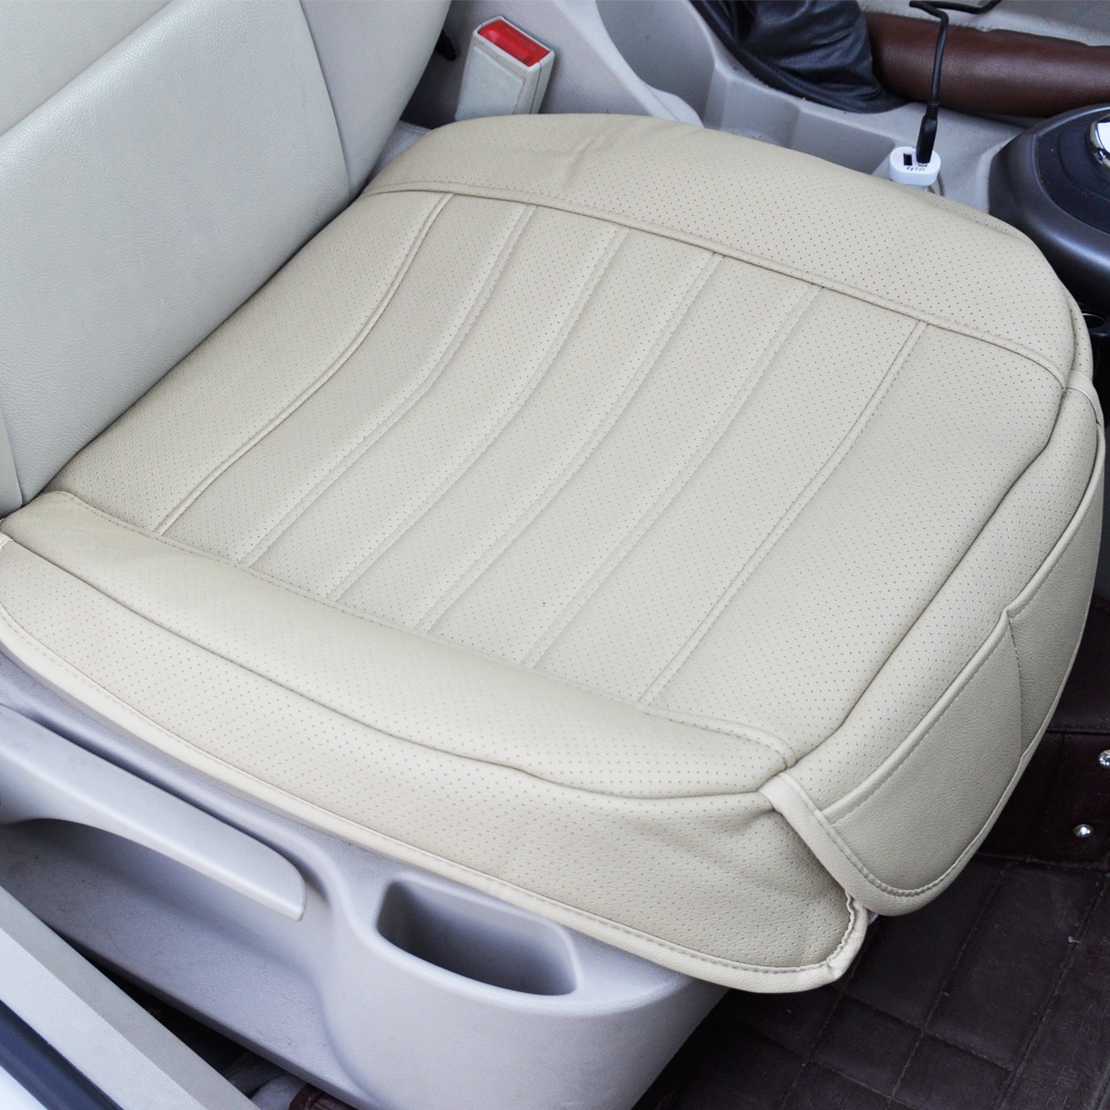 Universal beige car front seat cover breathable pu leather - Car seat covers for tan interior ...